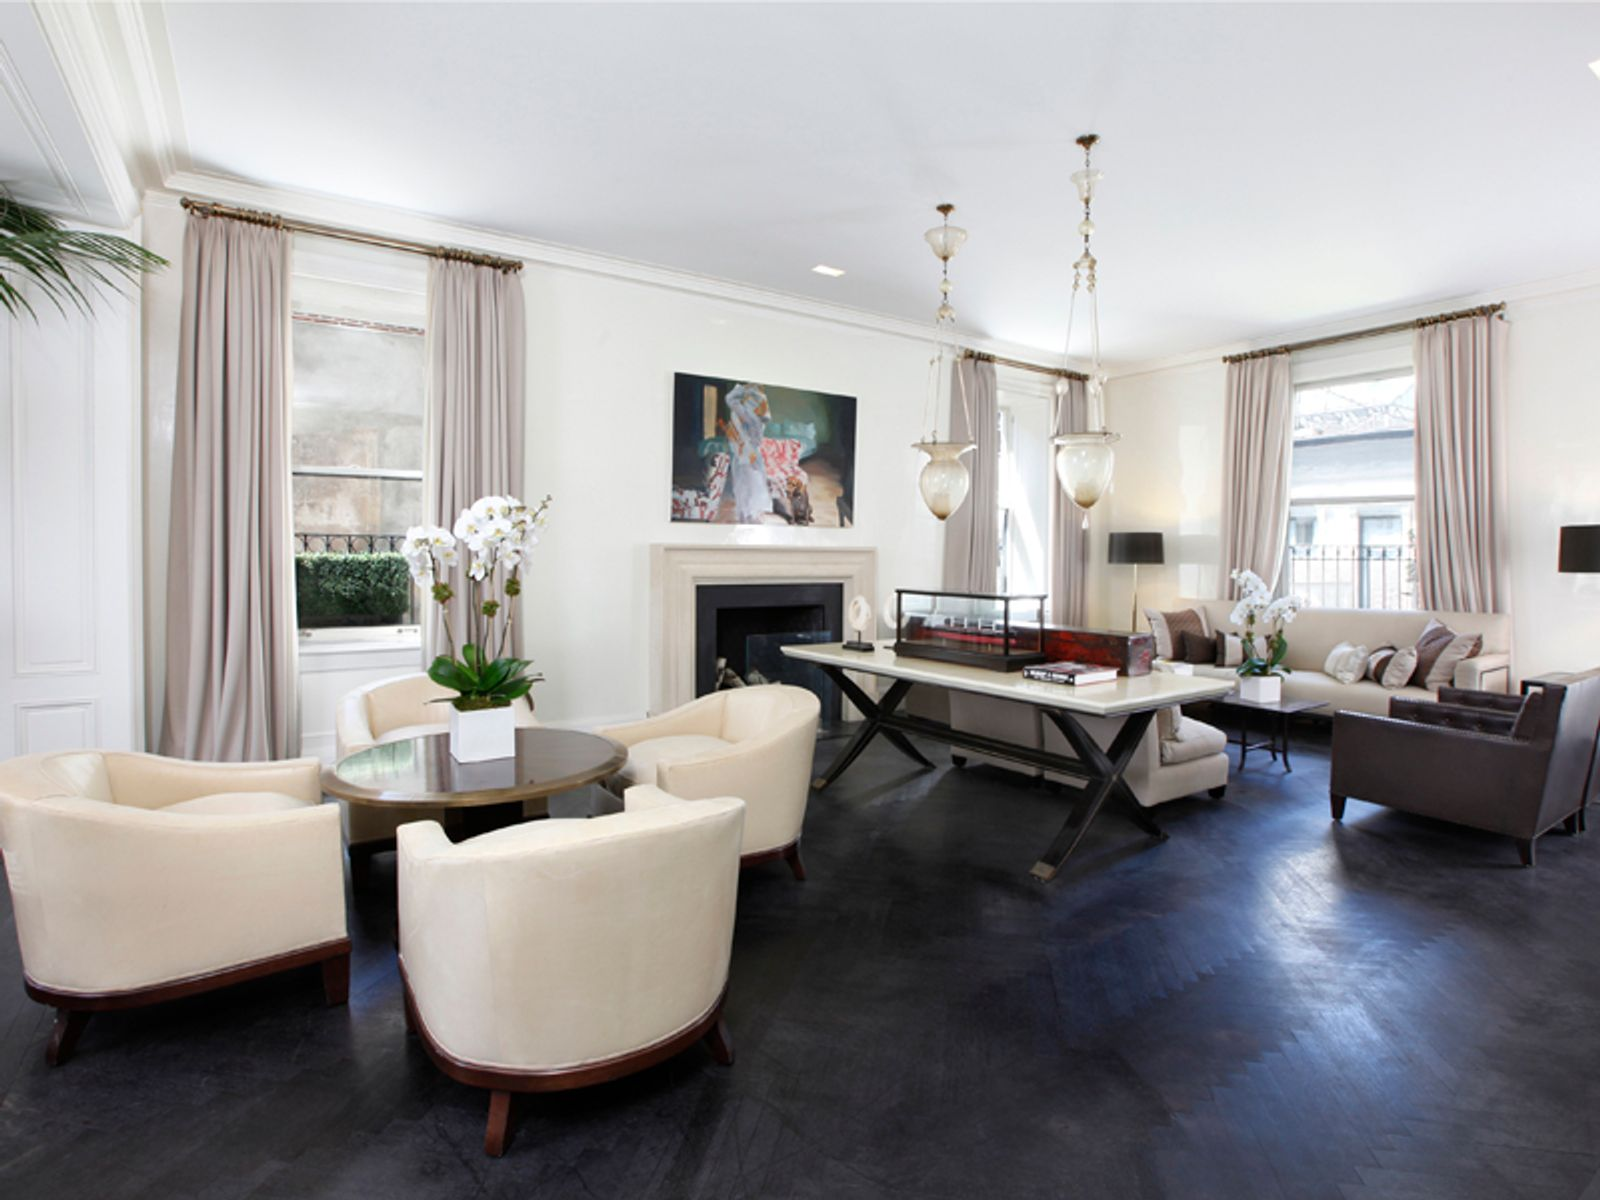 Elegant Duplex at 812 Park Avenue, New York NY Cooperative - New York City Real Estate